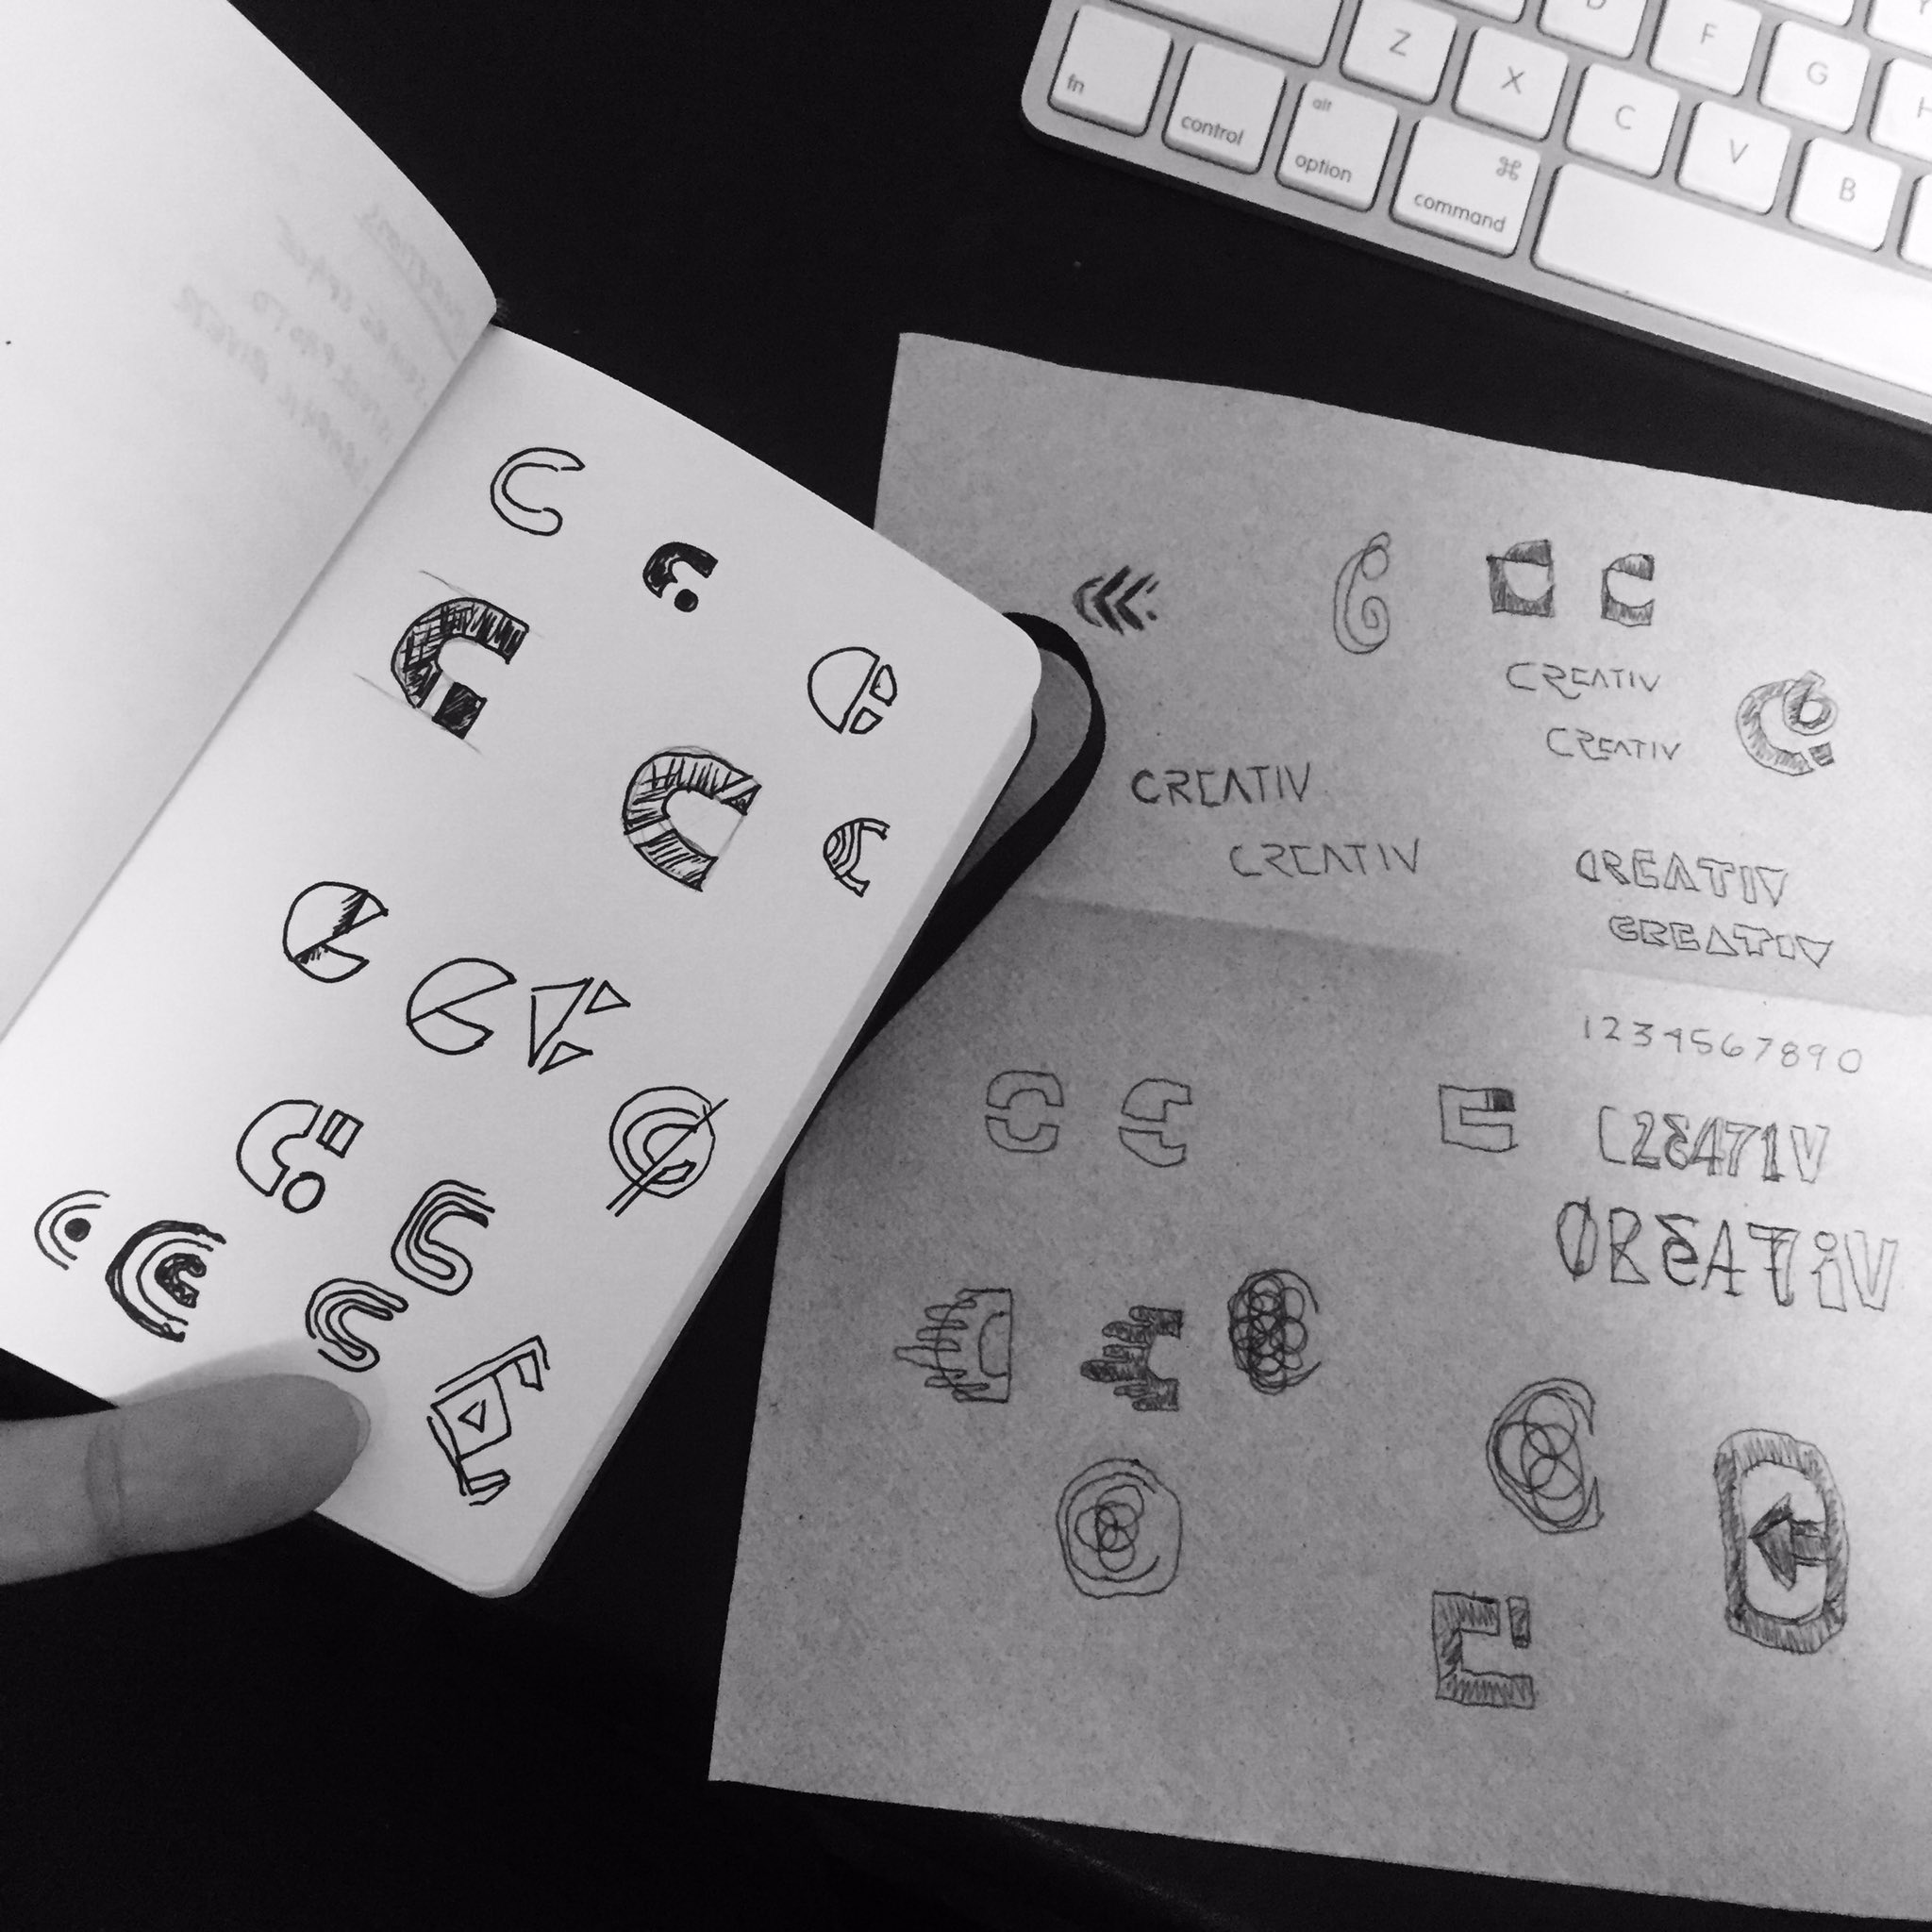 """On September 2nd, I posted this image on Twitter with a caption that said """"Sketching out random ideas. Trying to summon the mark."""""""